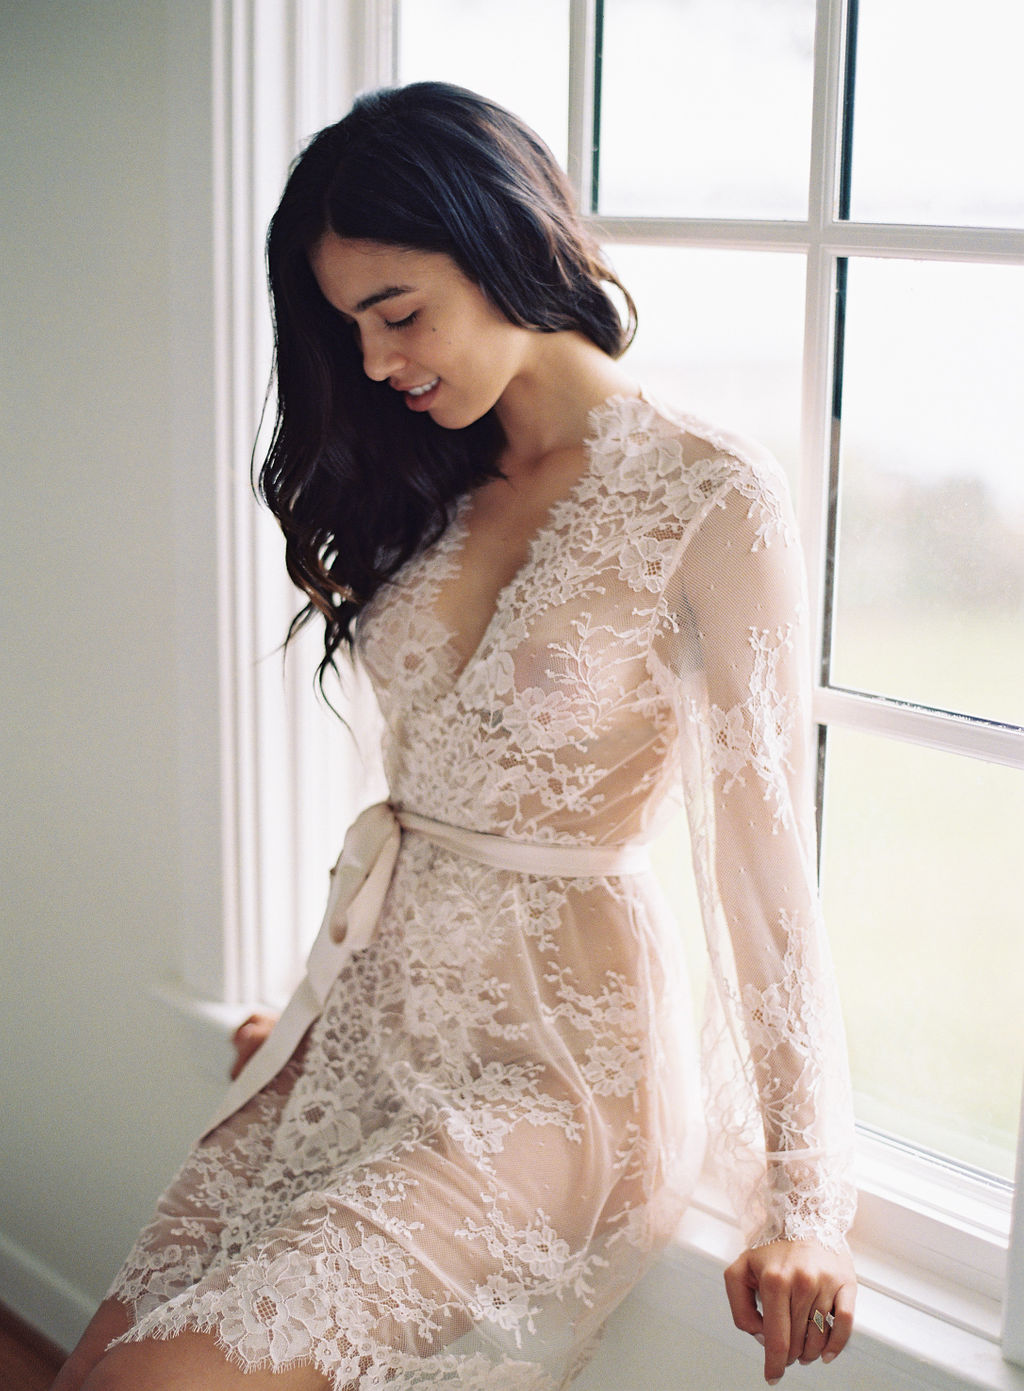 lace bridal robe girl a serious dream french lace robe the heavy winter park boudoir photoshoot